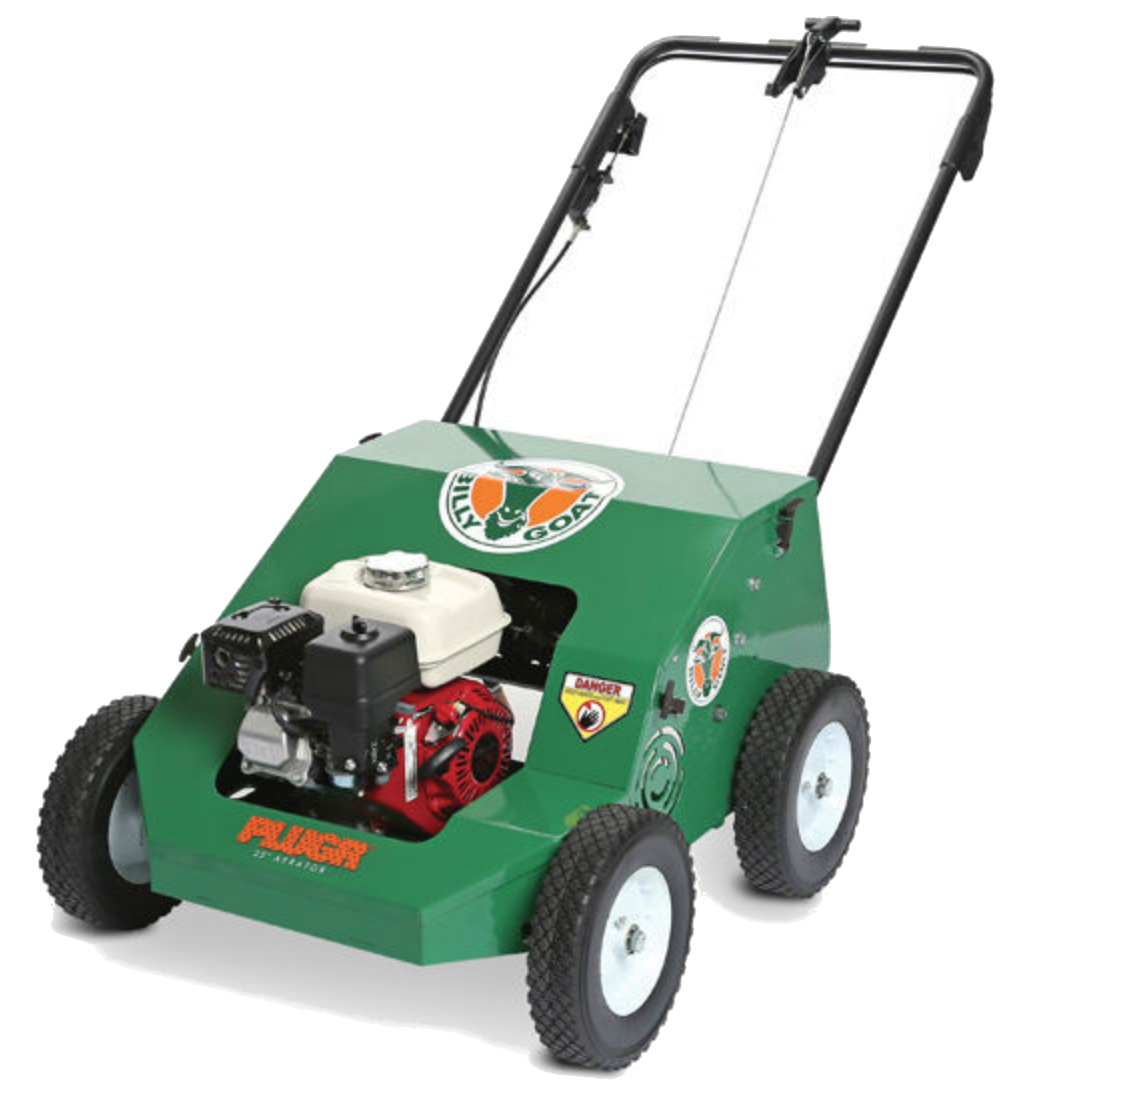 Grass Aerator Do I Need A Lawn Aerator Mowdirect